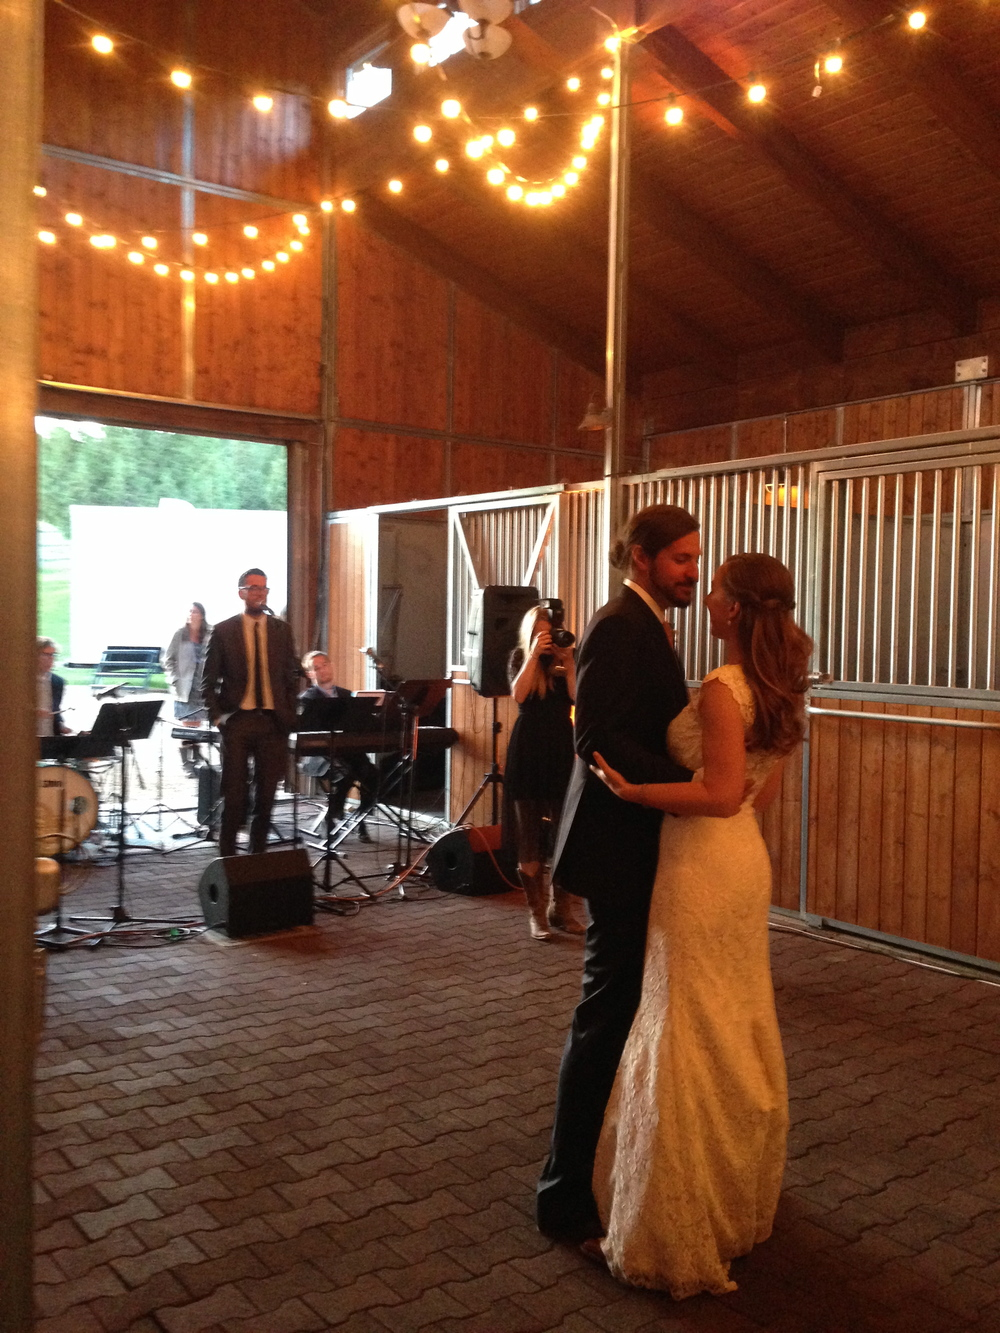 Inside the barn for the first dance.